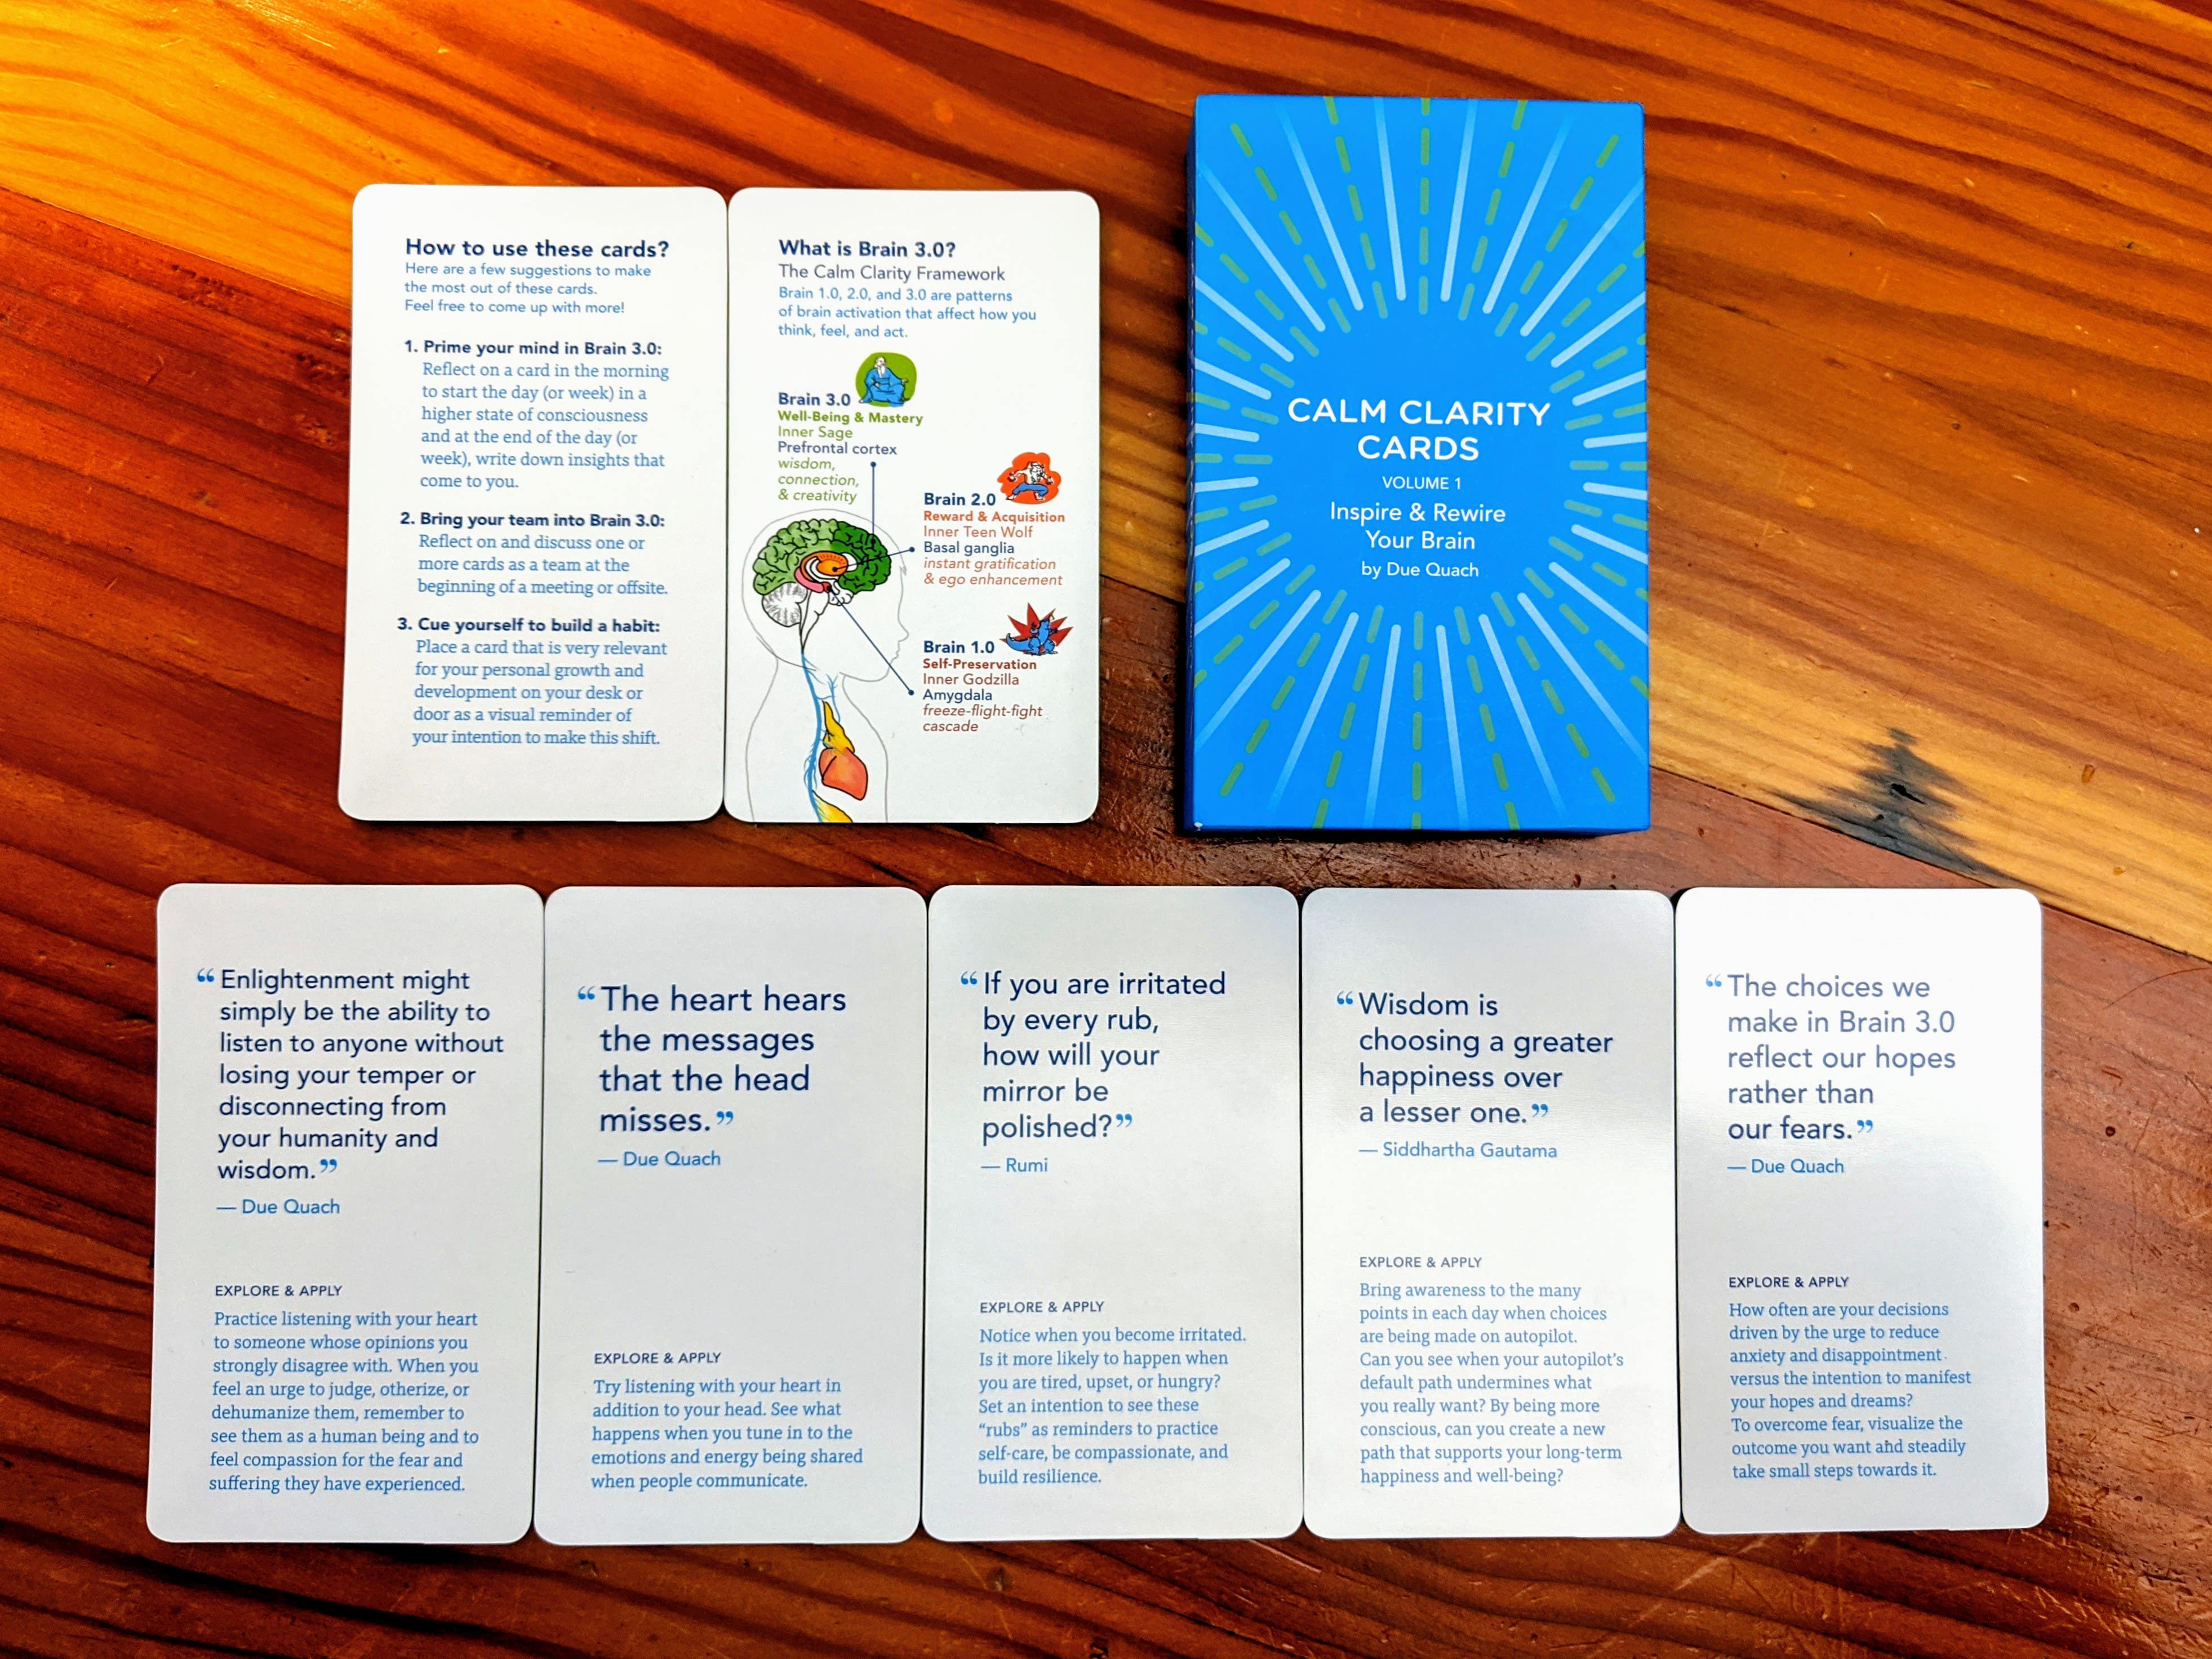 Calm Clarity Cards - wooden table